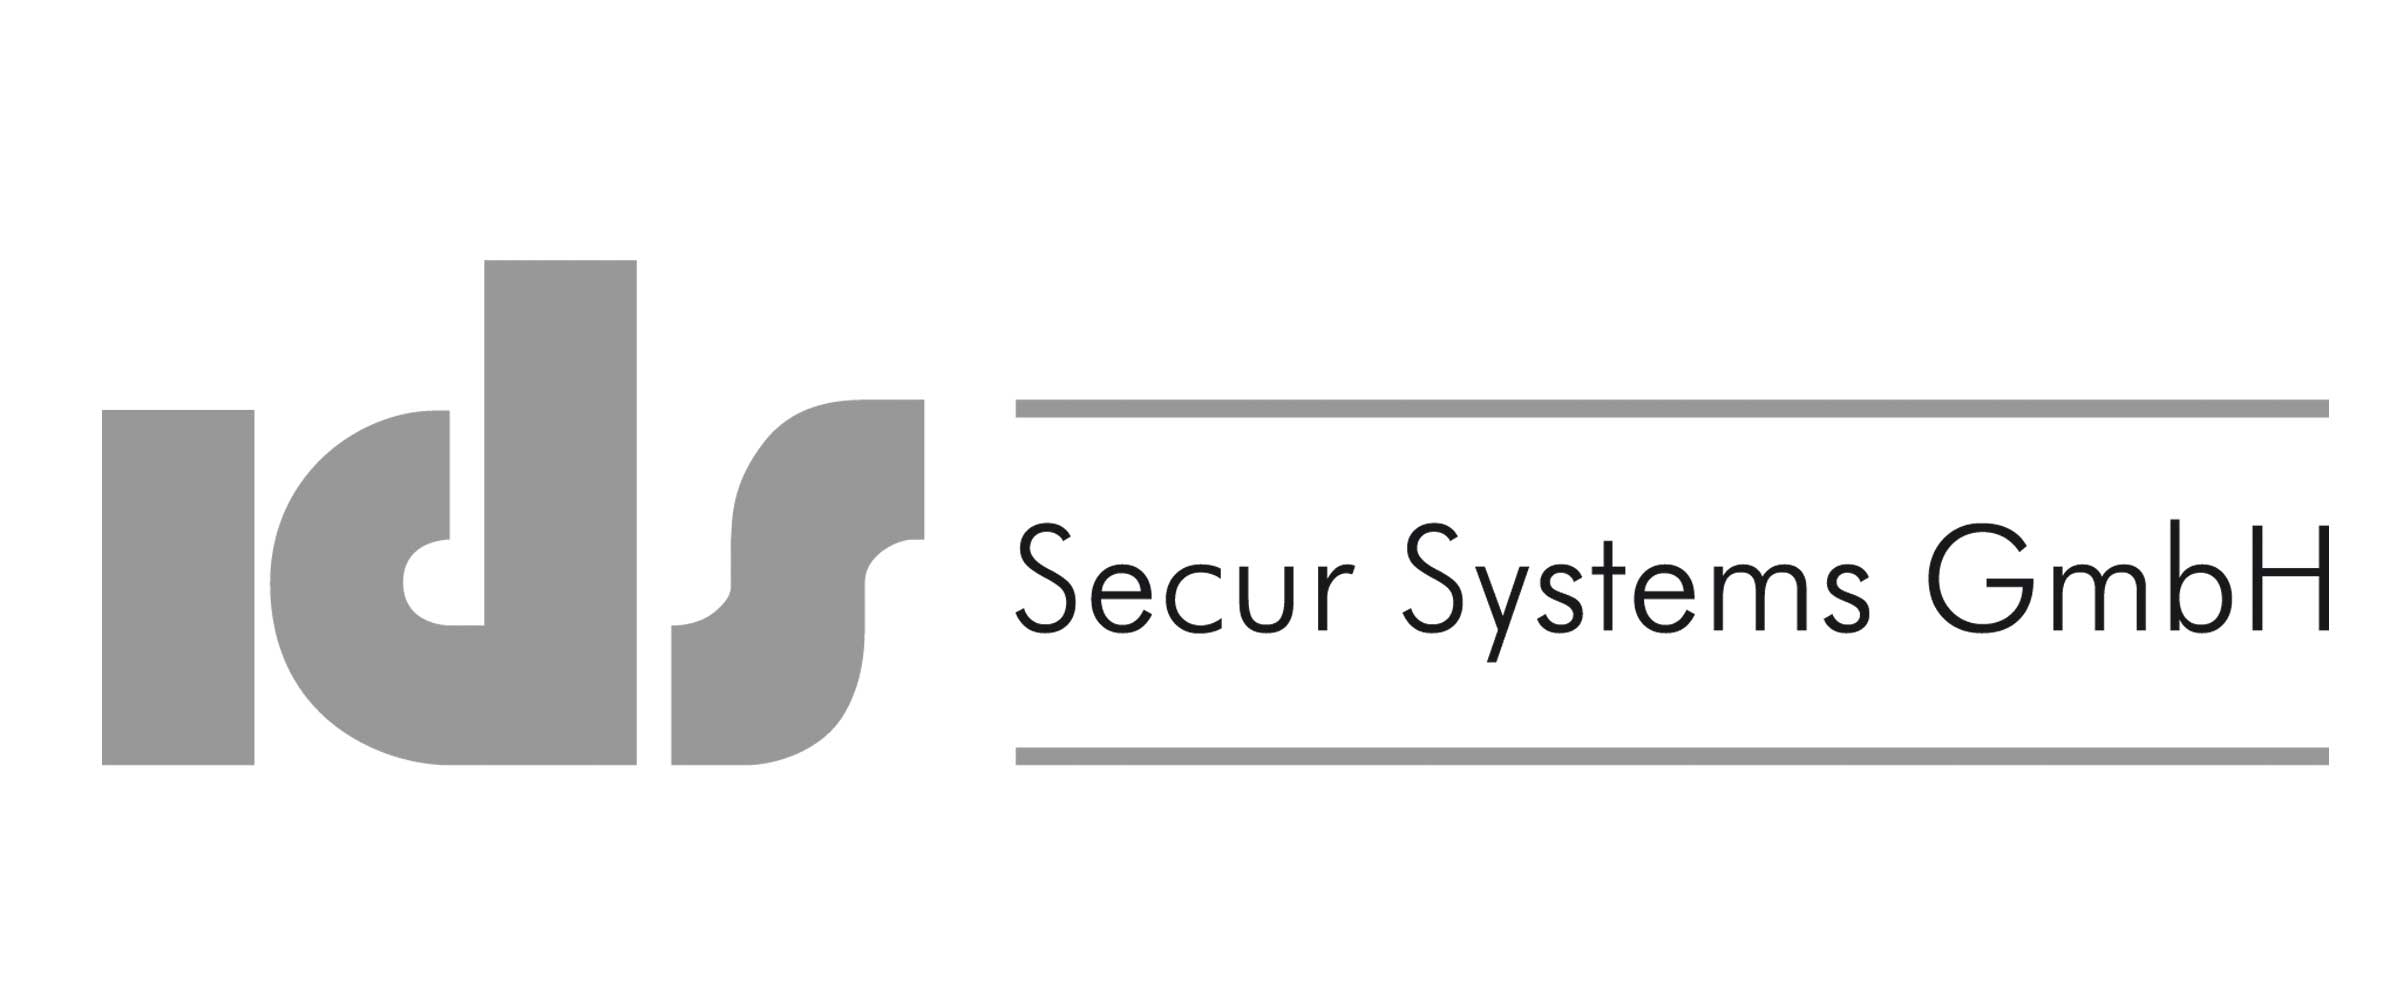 IDS Secur Systems GmbH